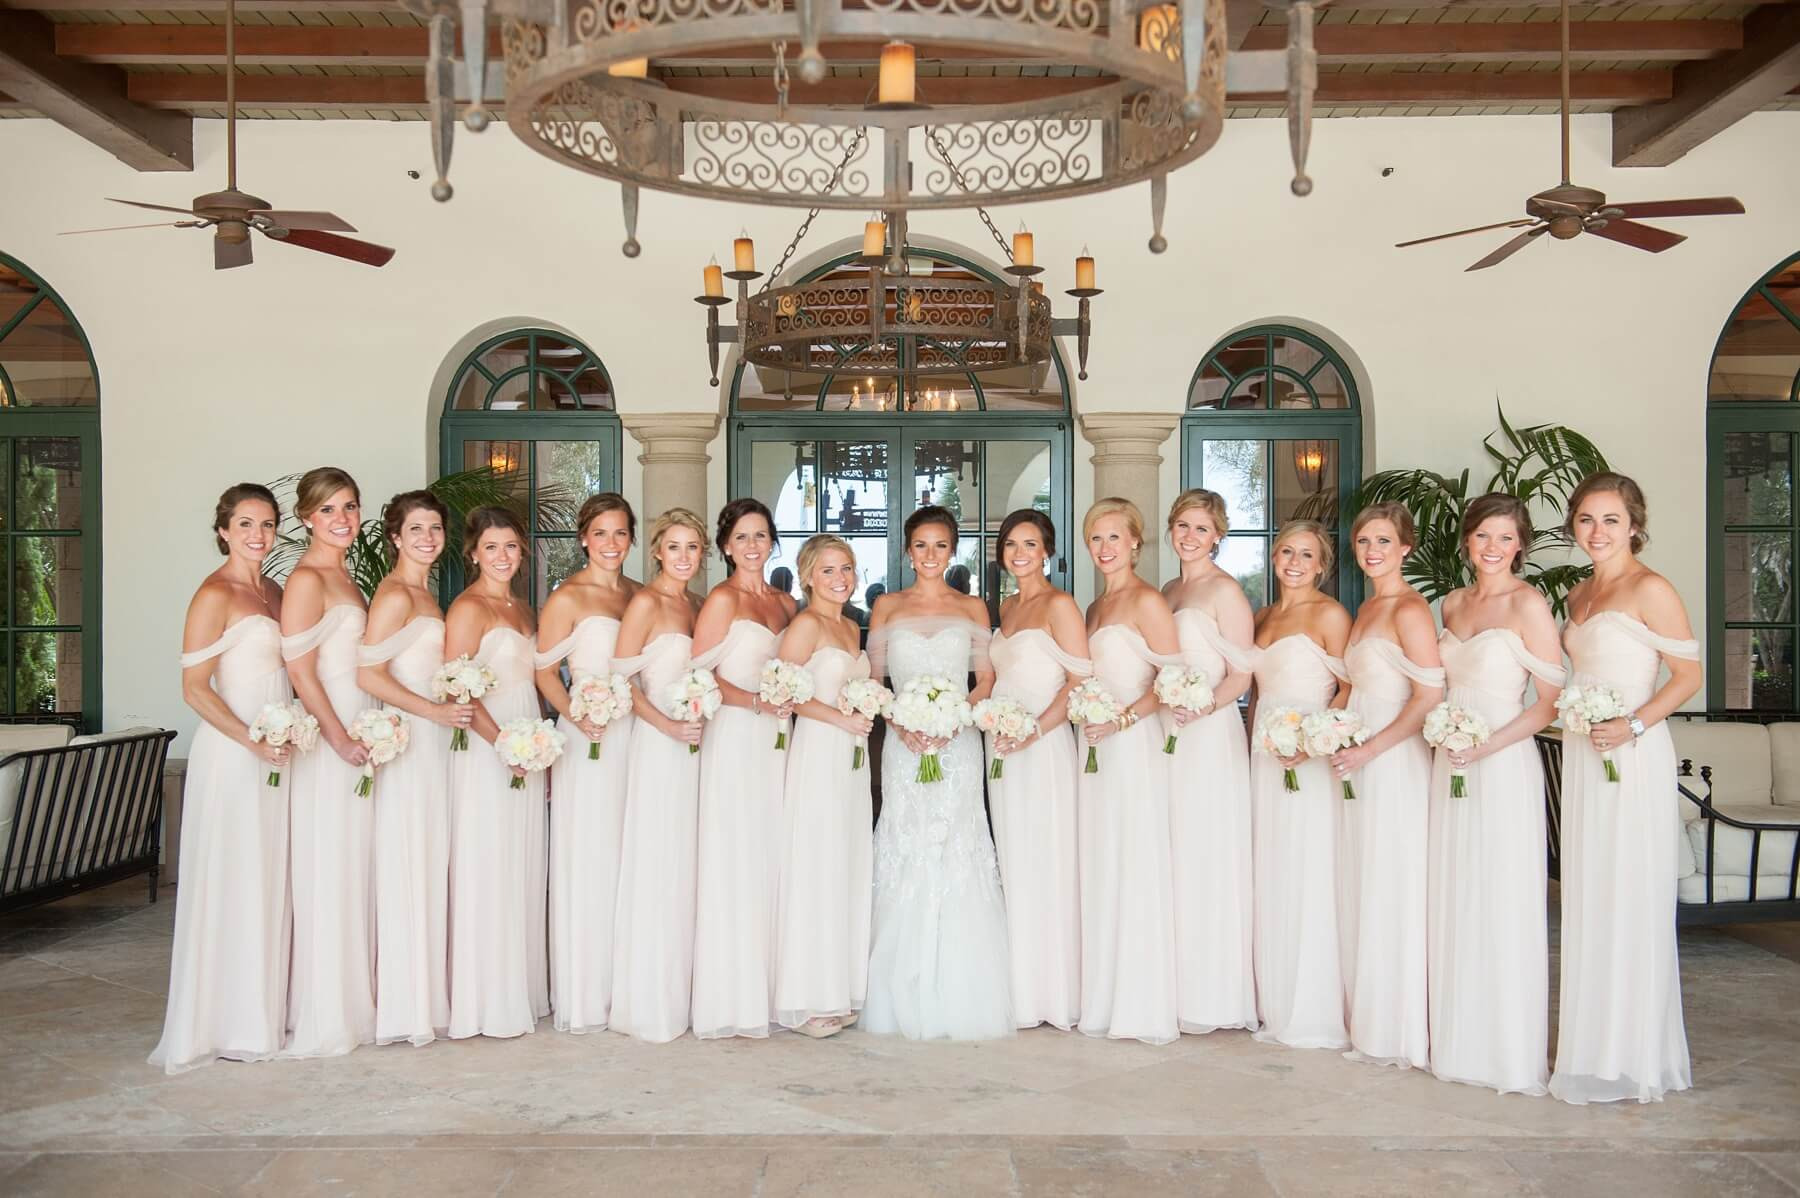 The bridesmaids were stunning in bellini-colored chiffon gowns that elegantly draped off the shoulder, echoing the beautiful tulle wrap Holly wore around her shoulders for the ceremony.